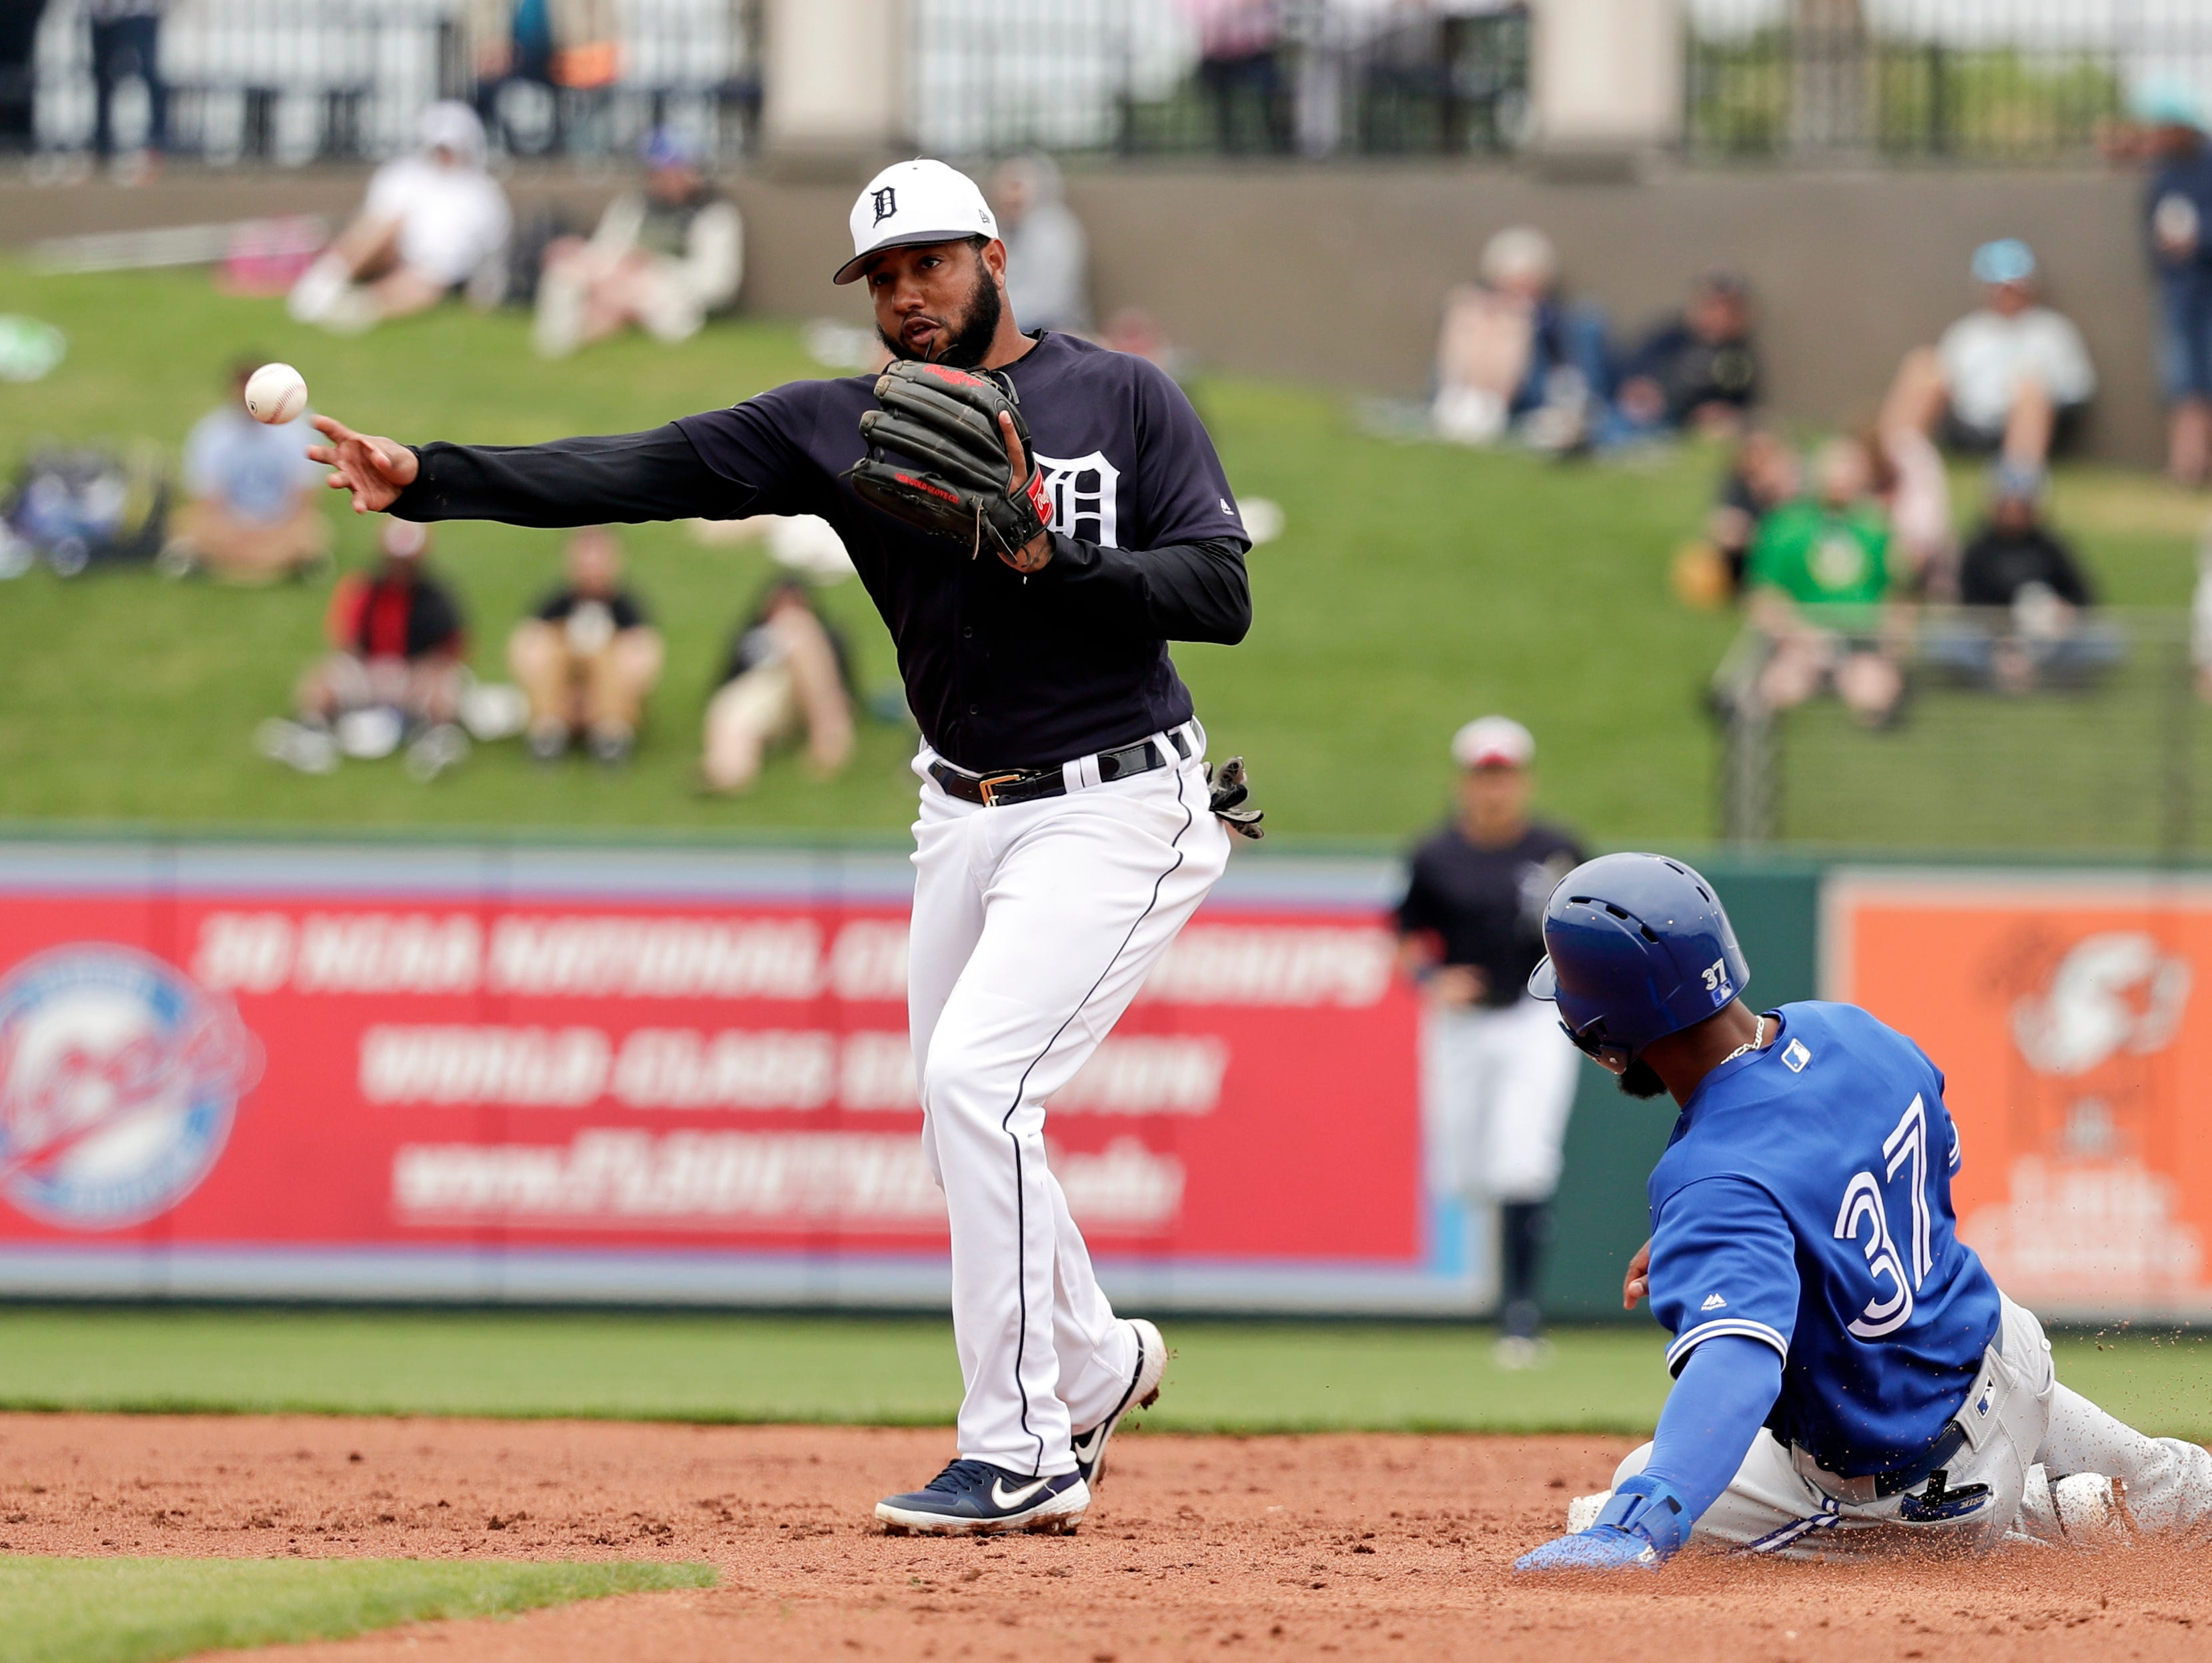 Detroit Tigers second baseman Ronny Rodriguez, left, throws to first for a double play after forcing Toronto Blue Jays right fielder Teoscar Hernandez (37) out at second during the third inning of a spring baseball exhibition game.